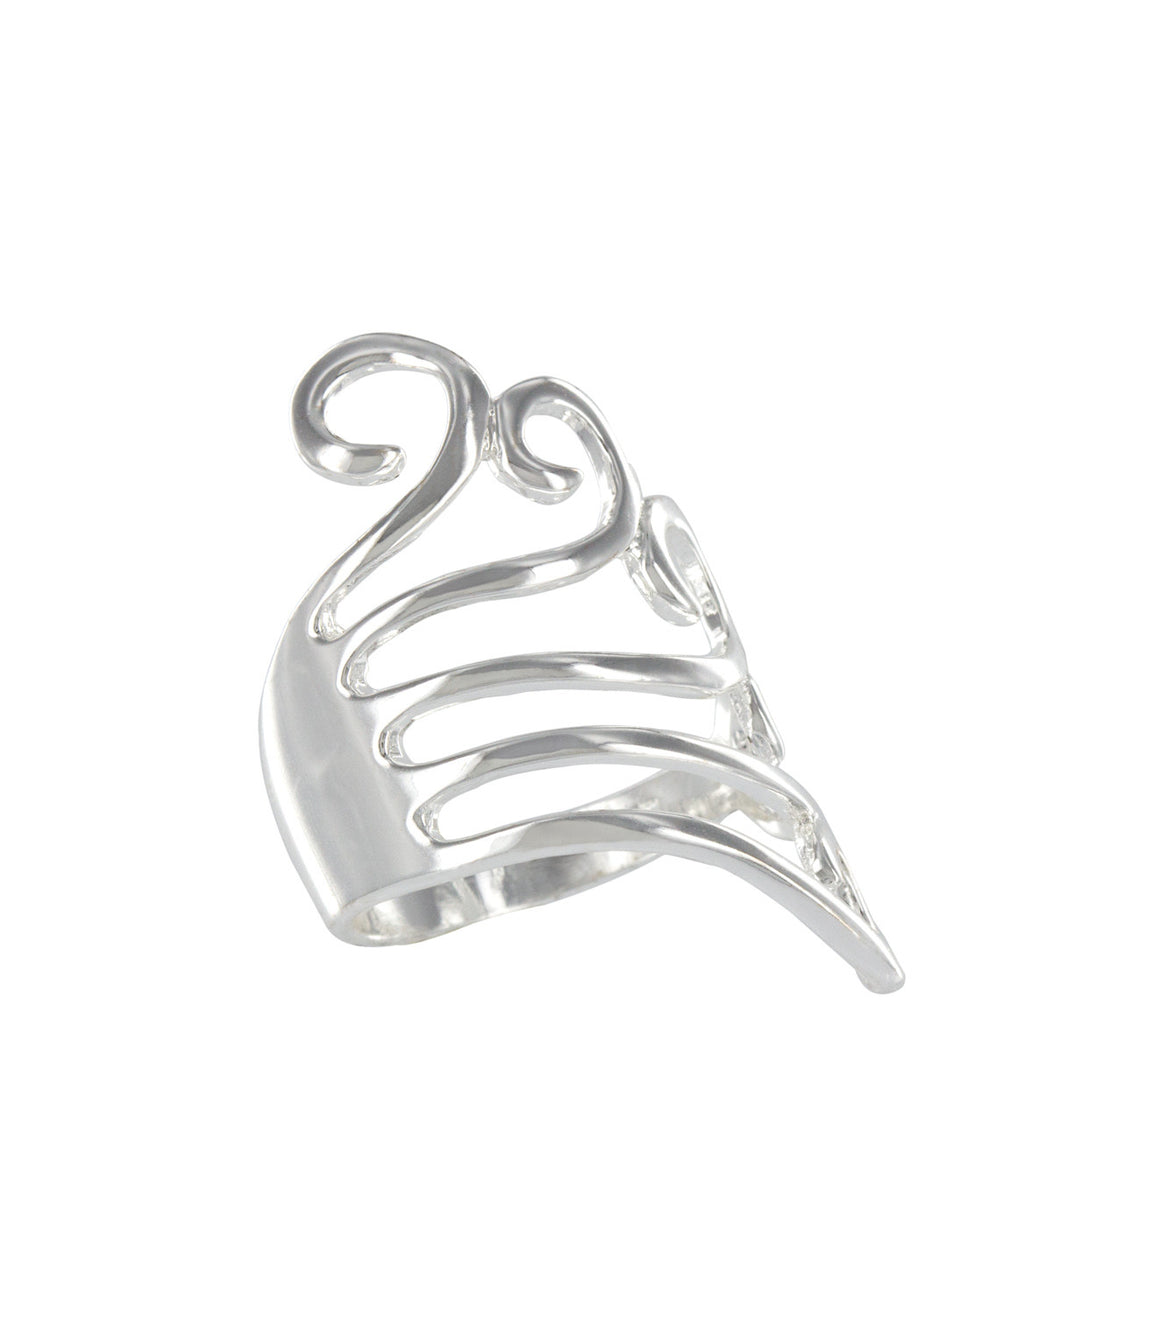 Open cut abstract structural sterling silver ring.